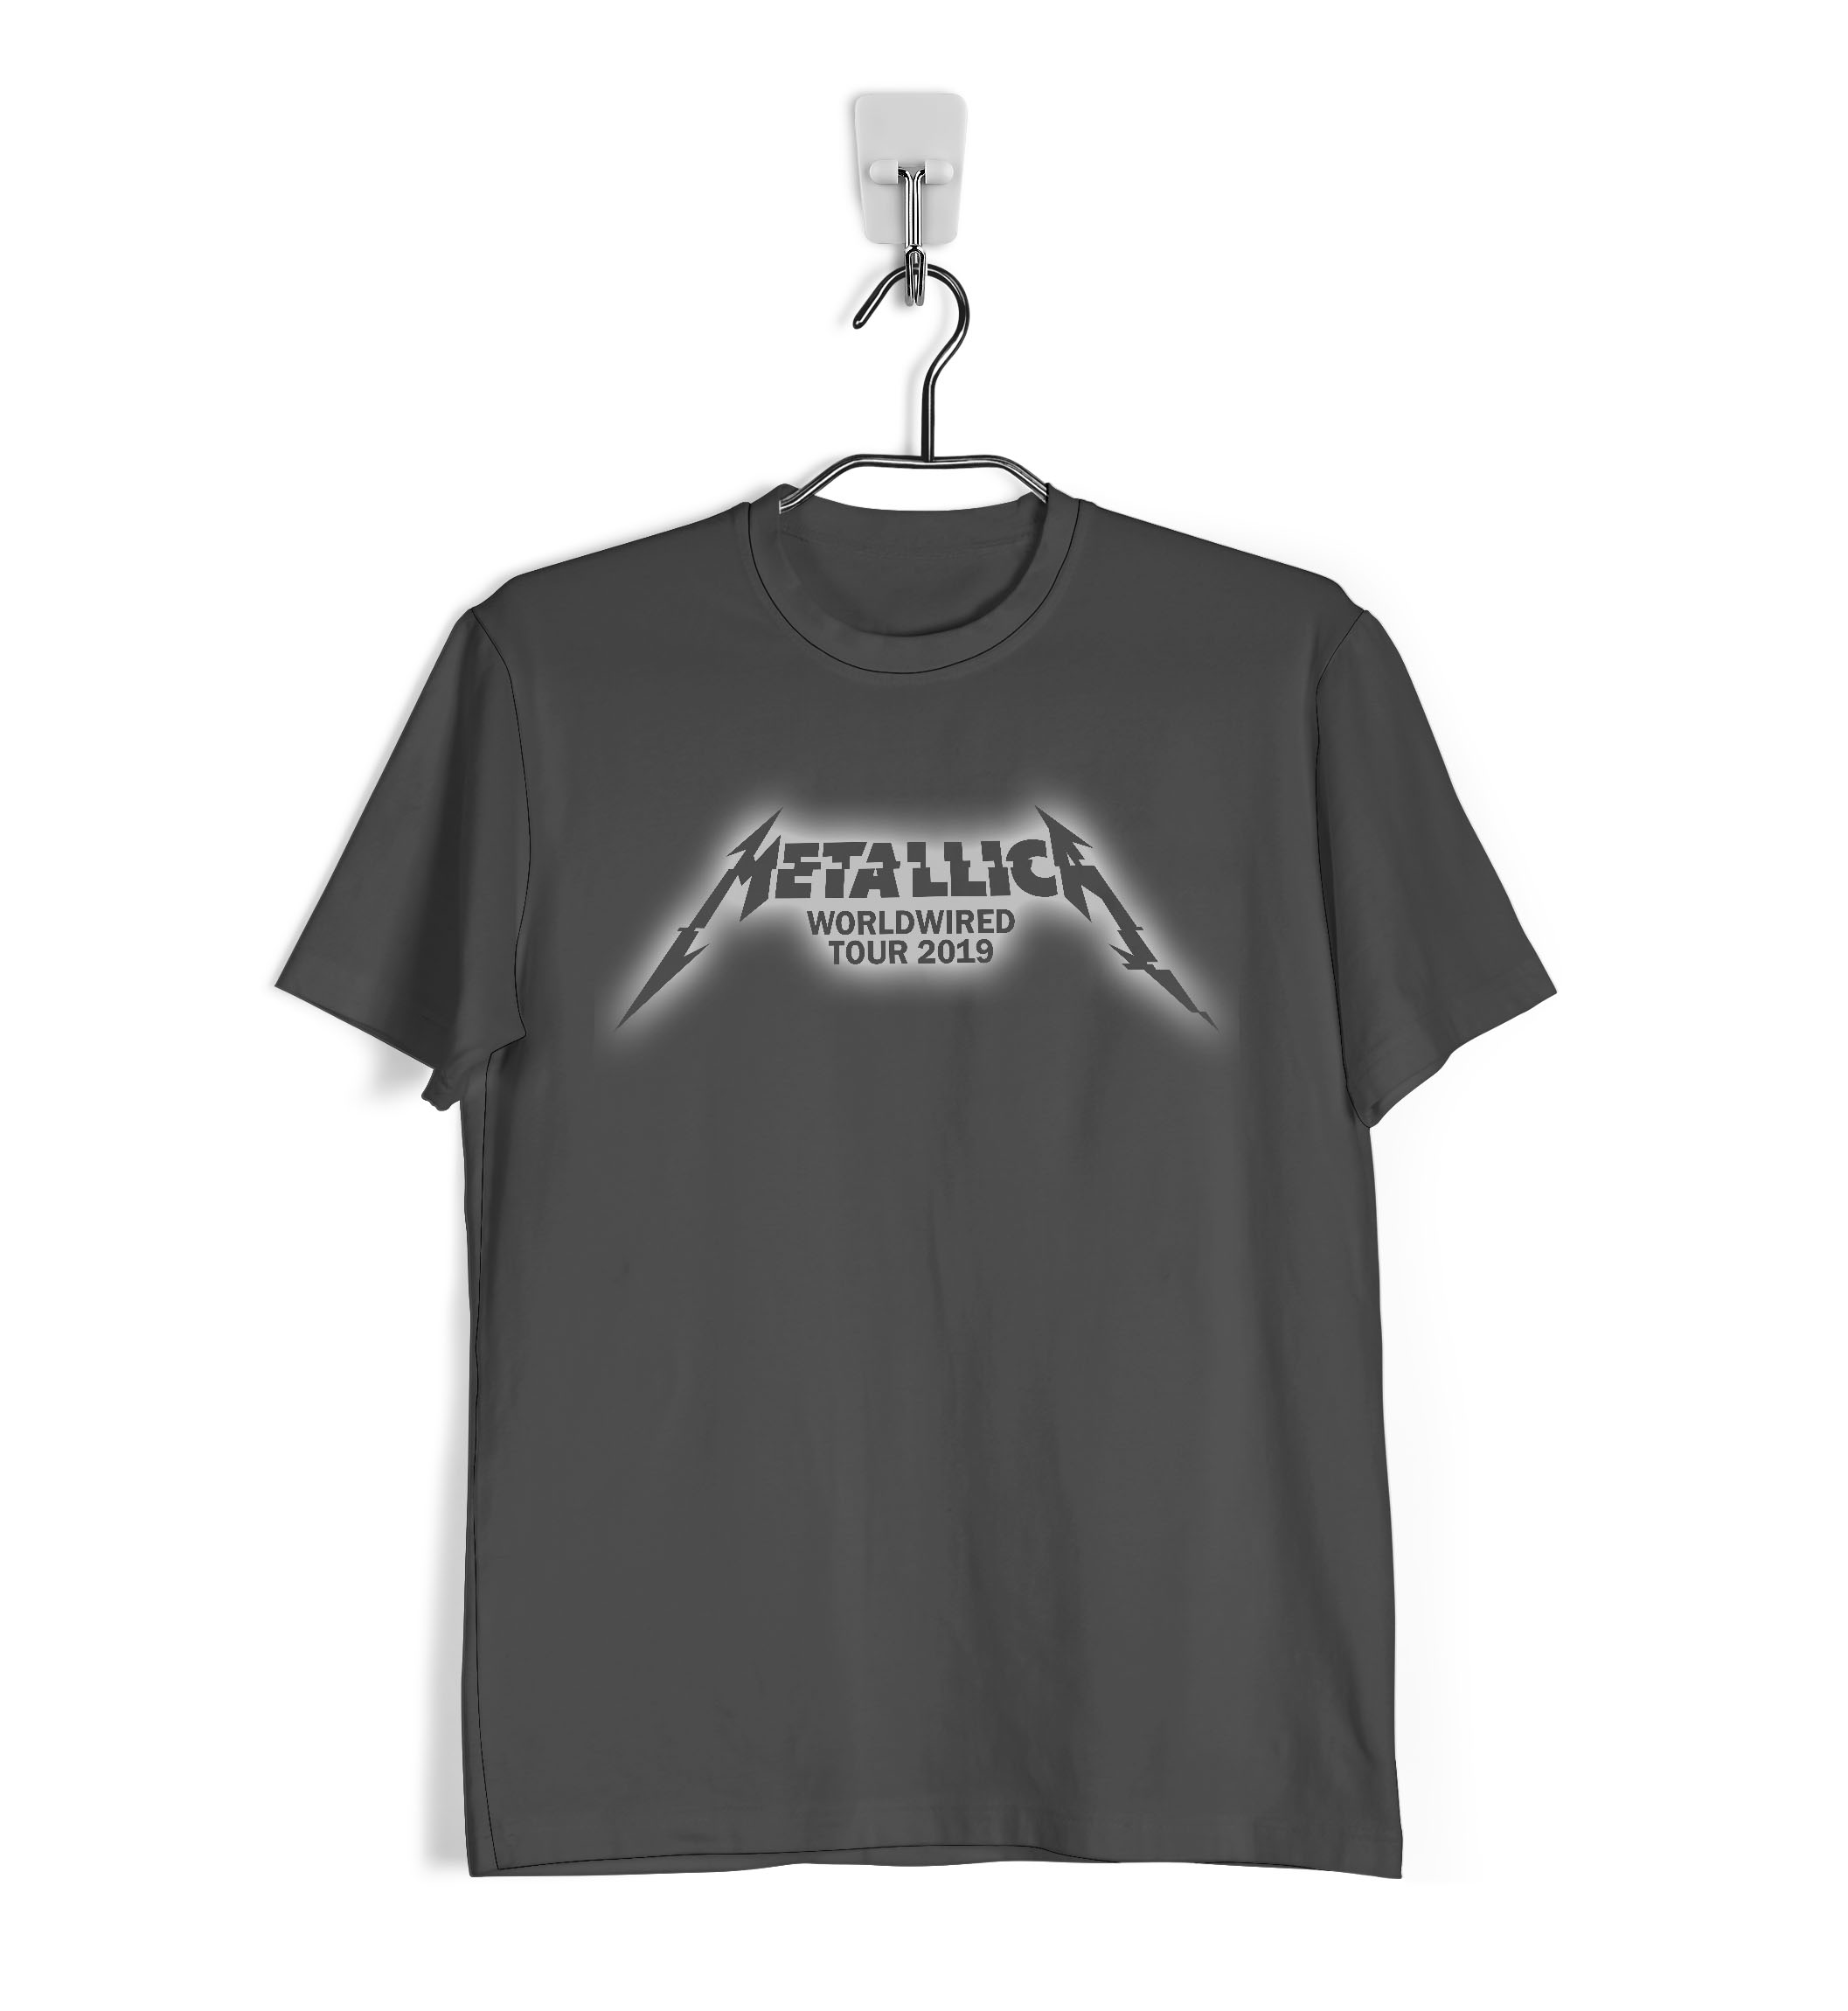 Tienda Metallica 2019 De Ropa4Tu Worldwired Camiseta Tour 9YeWHEID2b